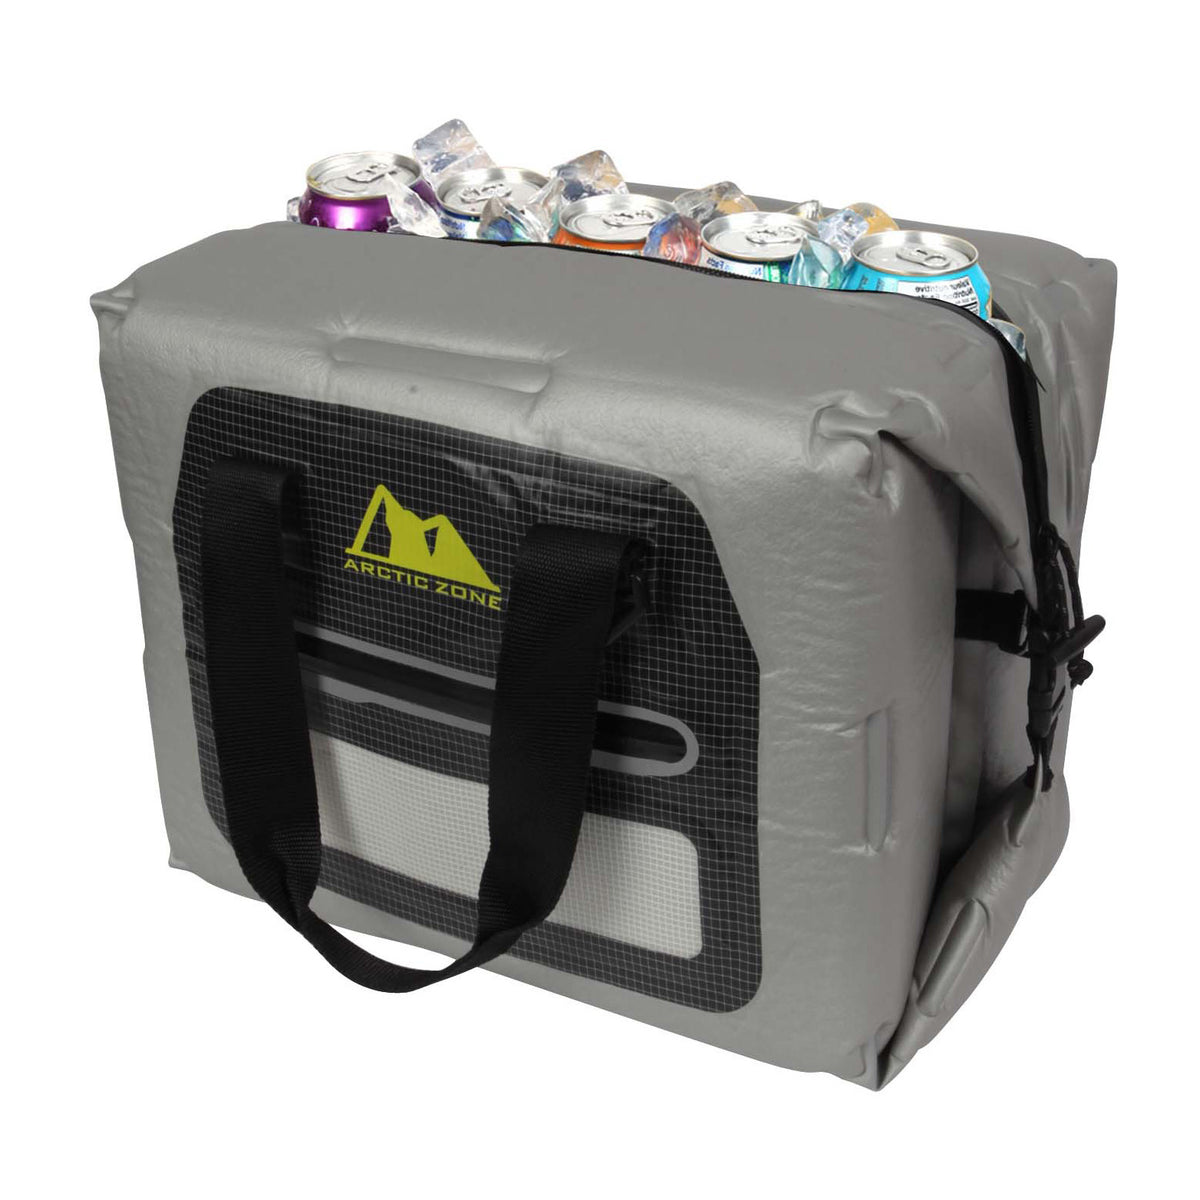 Arctic Zone® 30 Can Self-Inflating Cooler - box